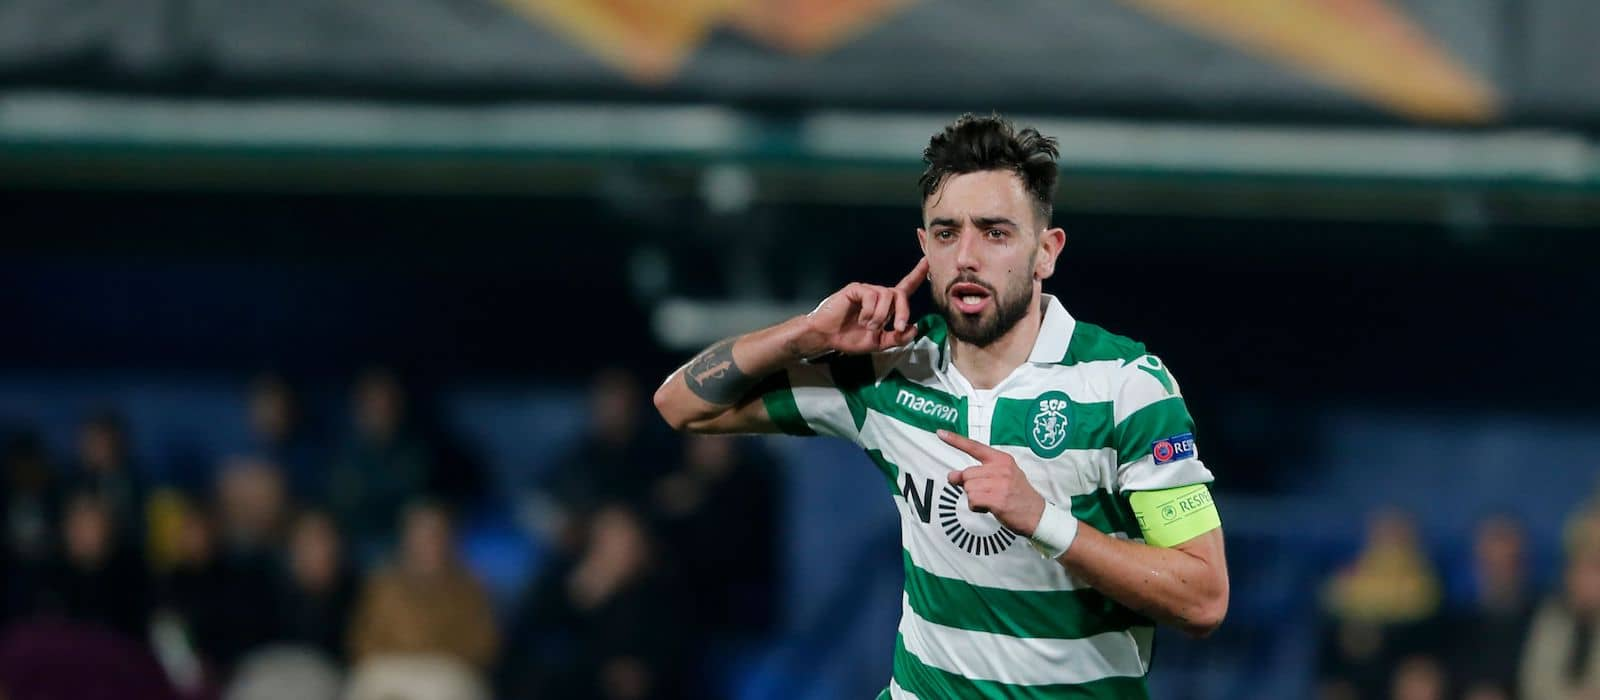 Sporting Lisbon president plays hardball for Manchester United target Bruno Fernandes